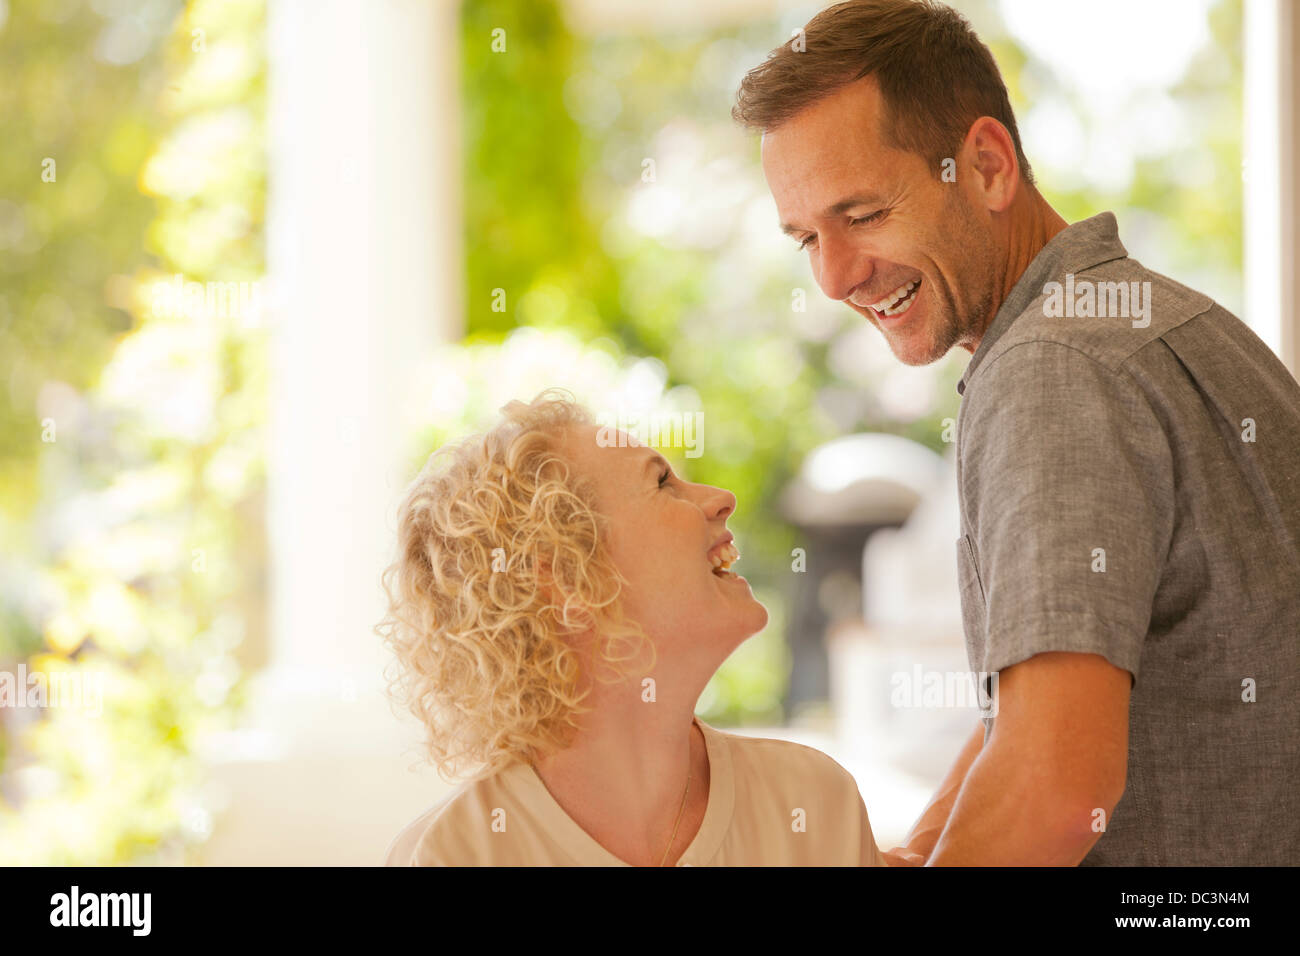 Laughing couple on patio - Stock Image